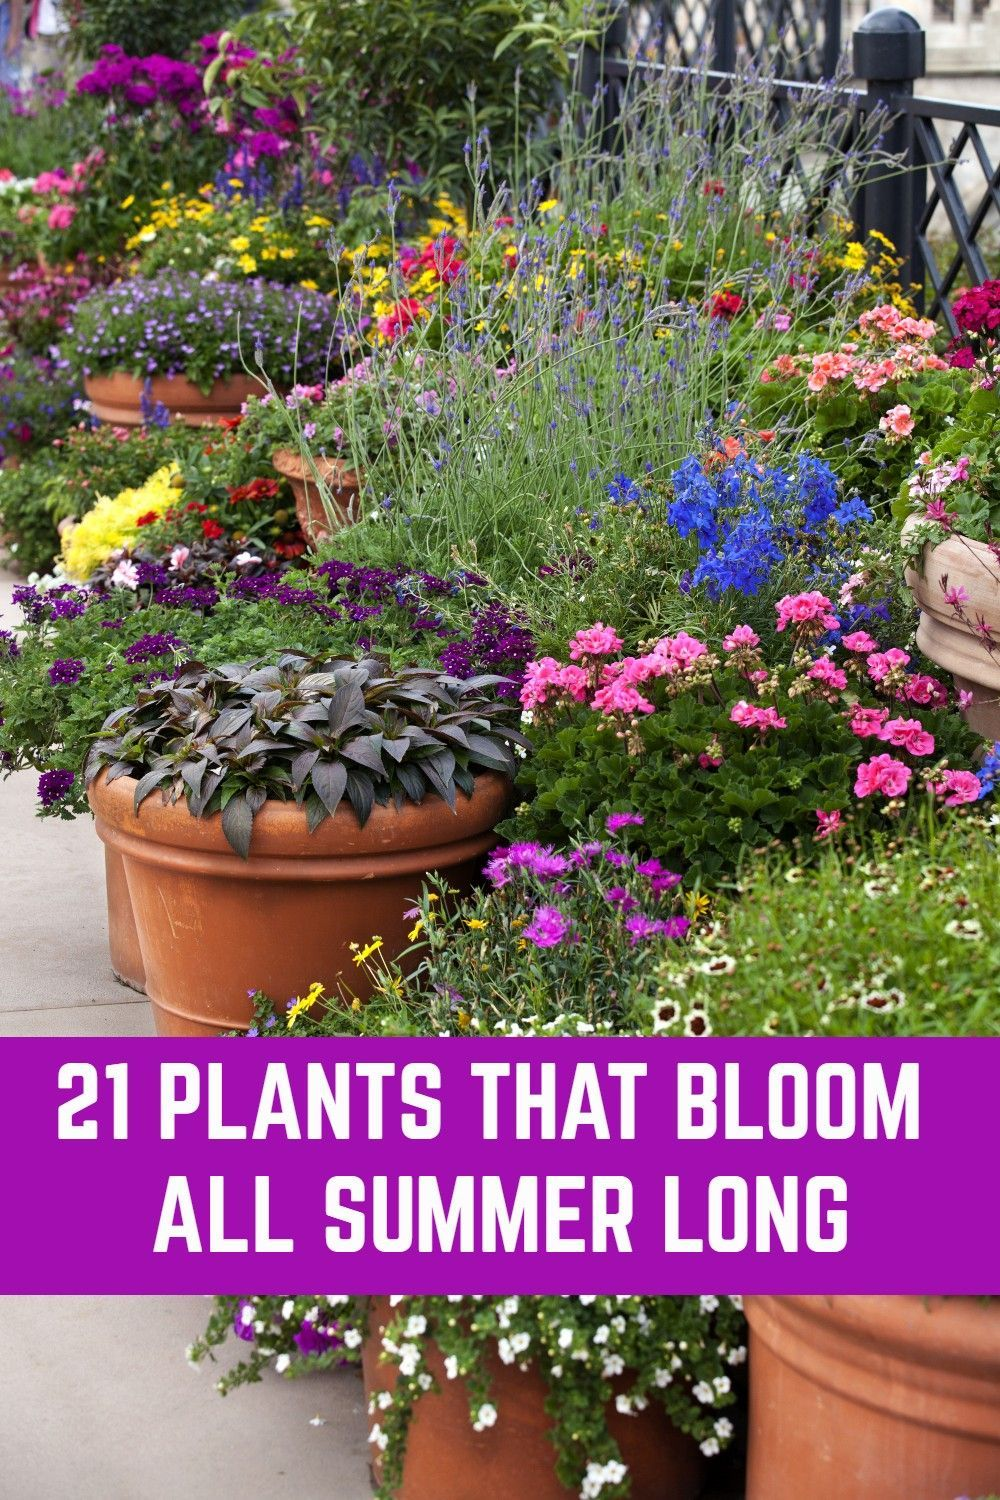 21 Plants That Bloom All Summer Long